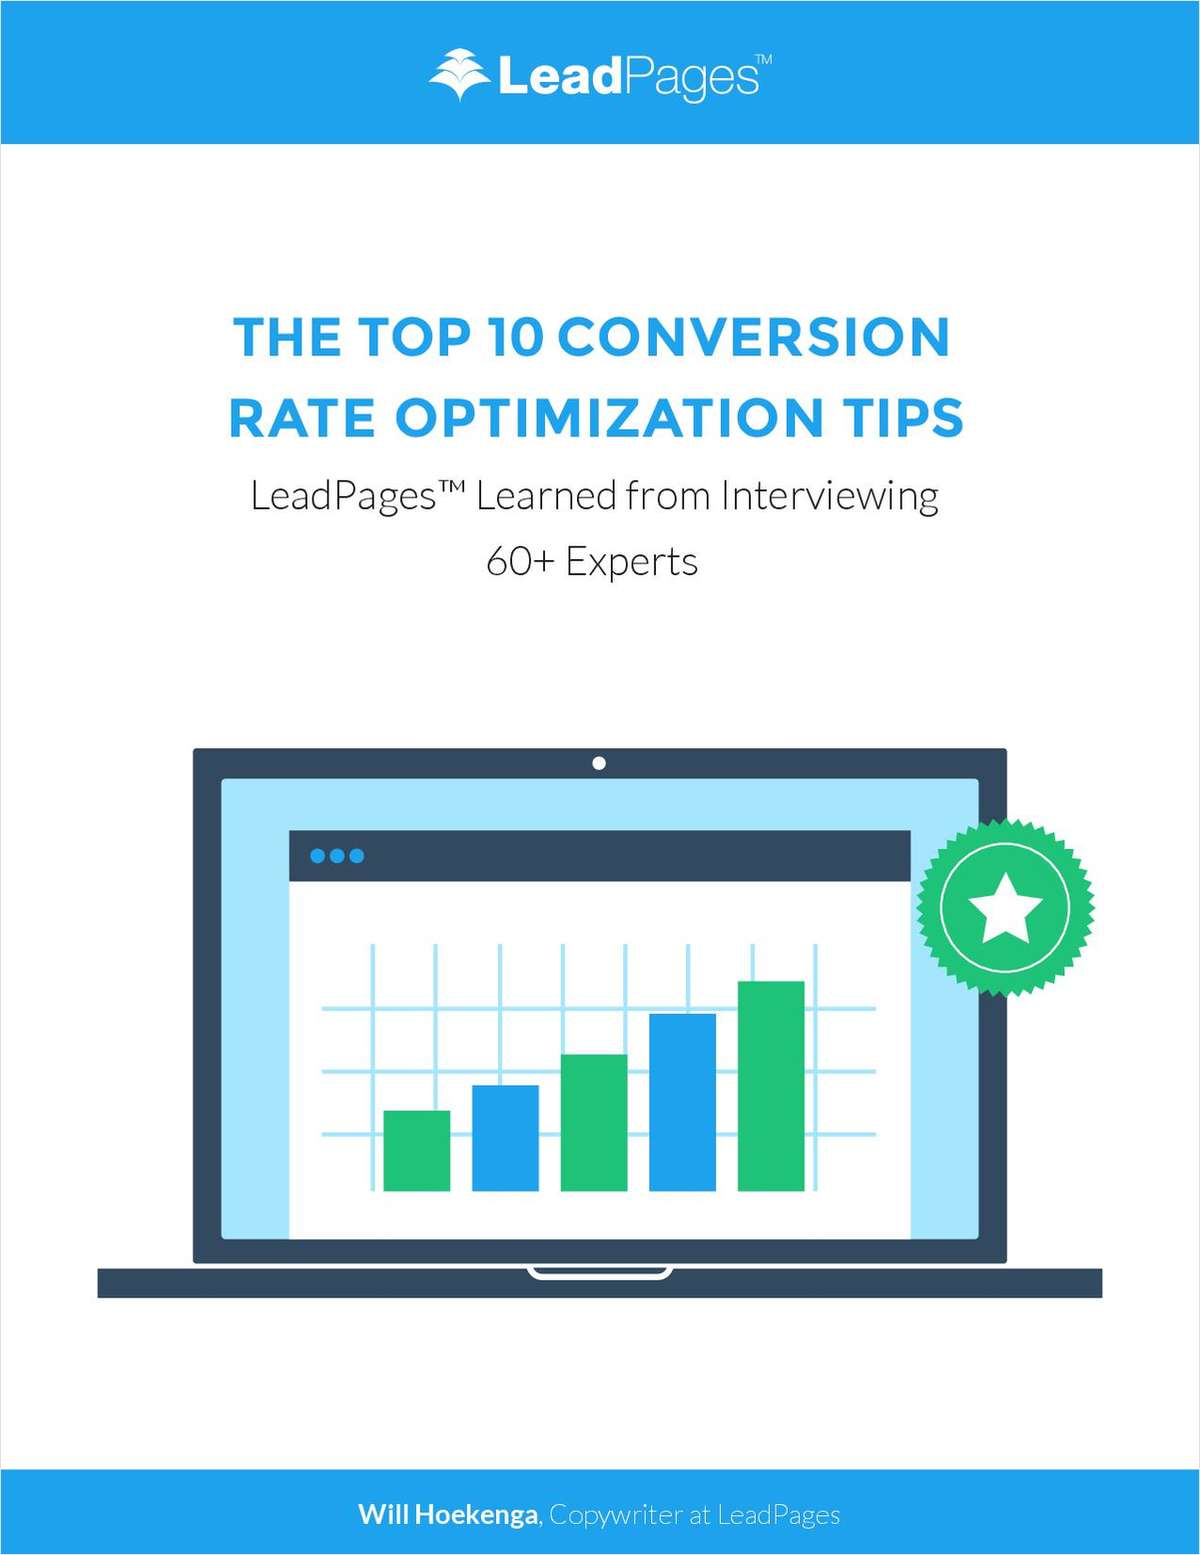 The Top 10 Conversion Rate Optimization Tips LeadPages Learned from Interviewing 60+ Experts